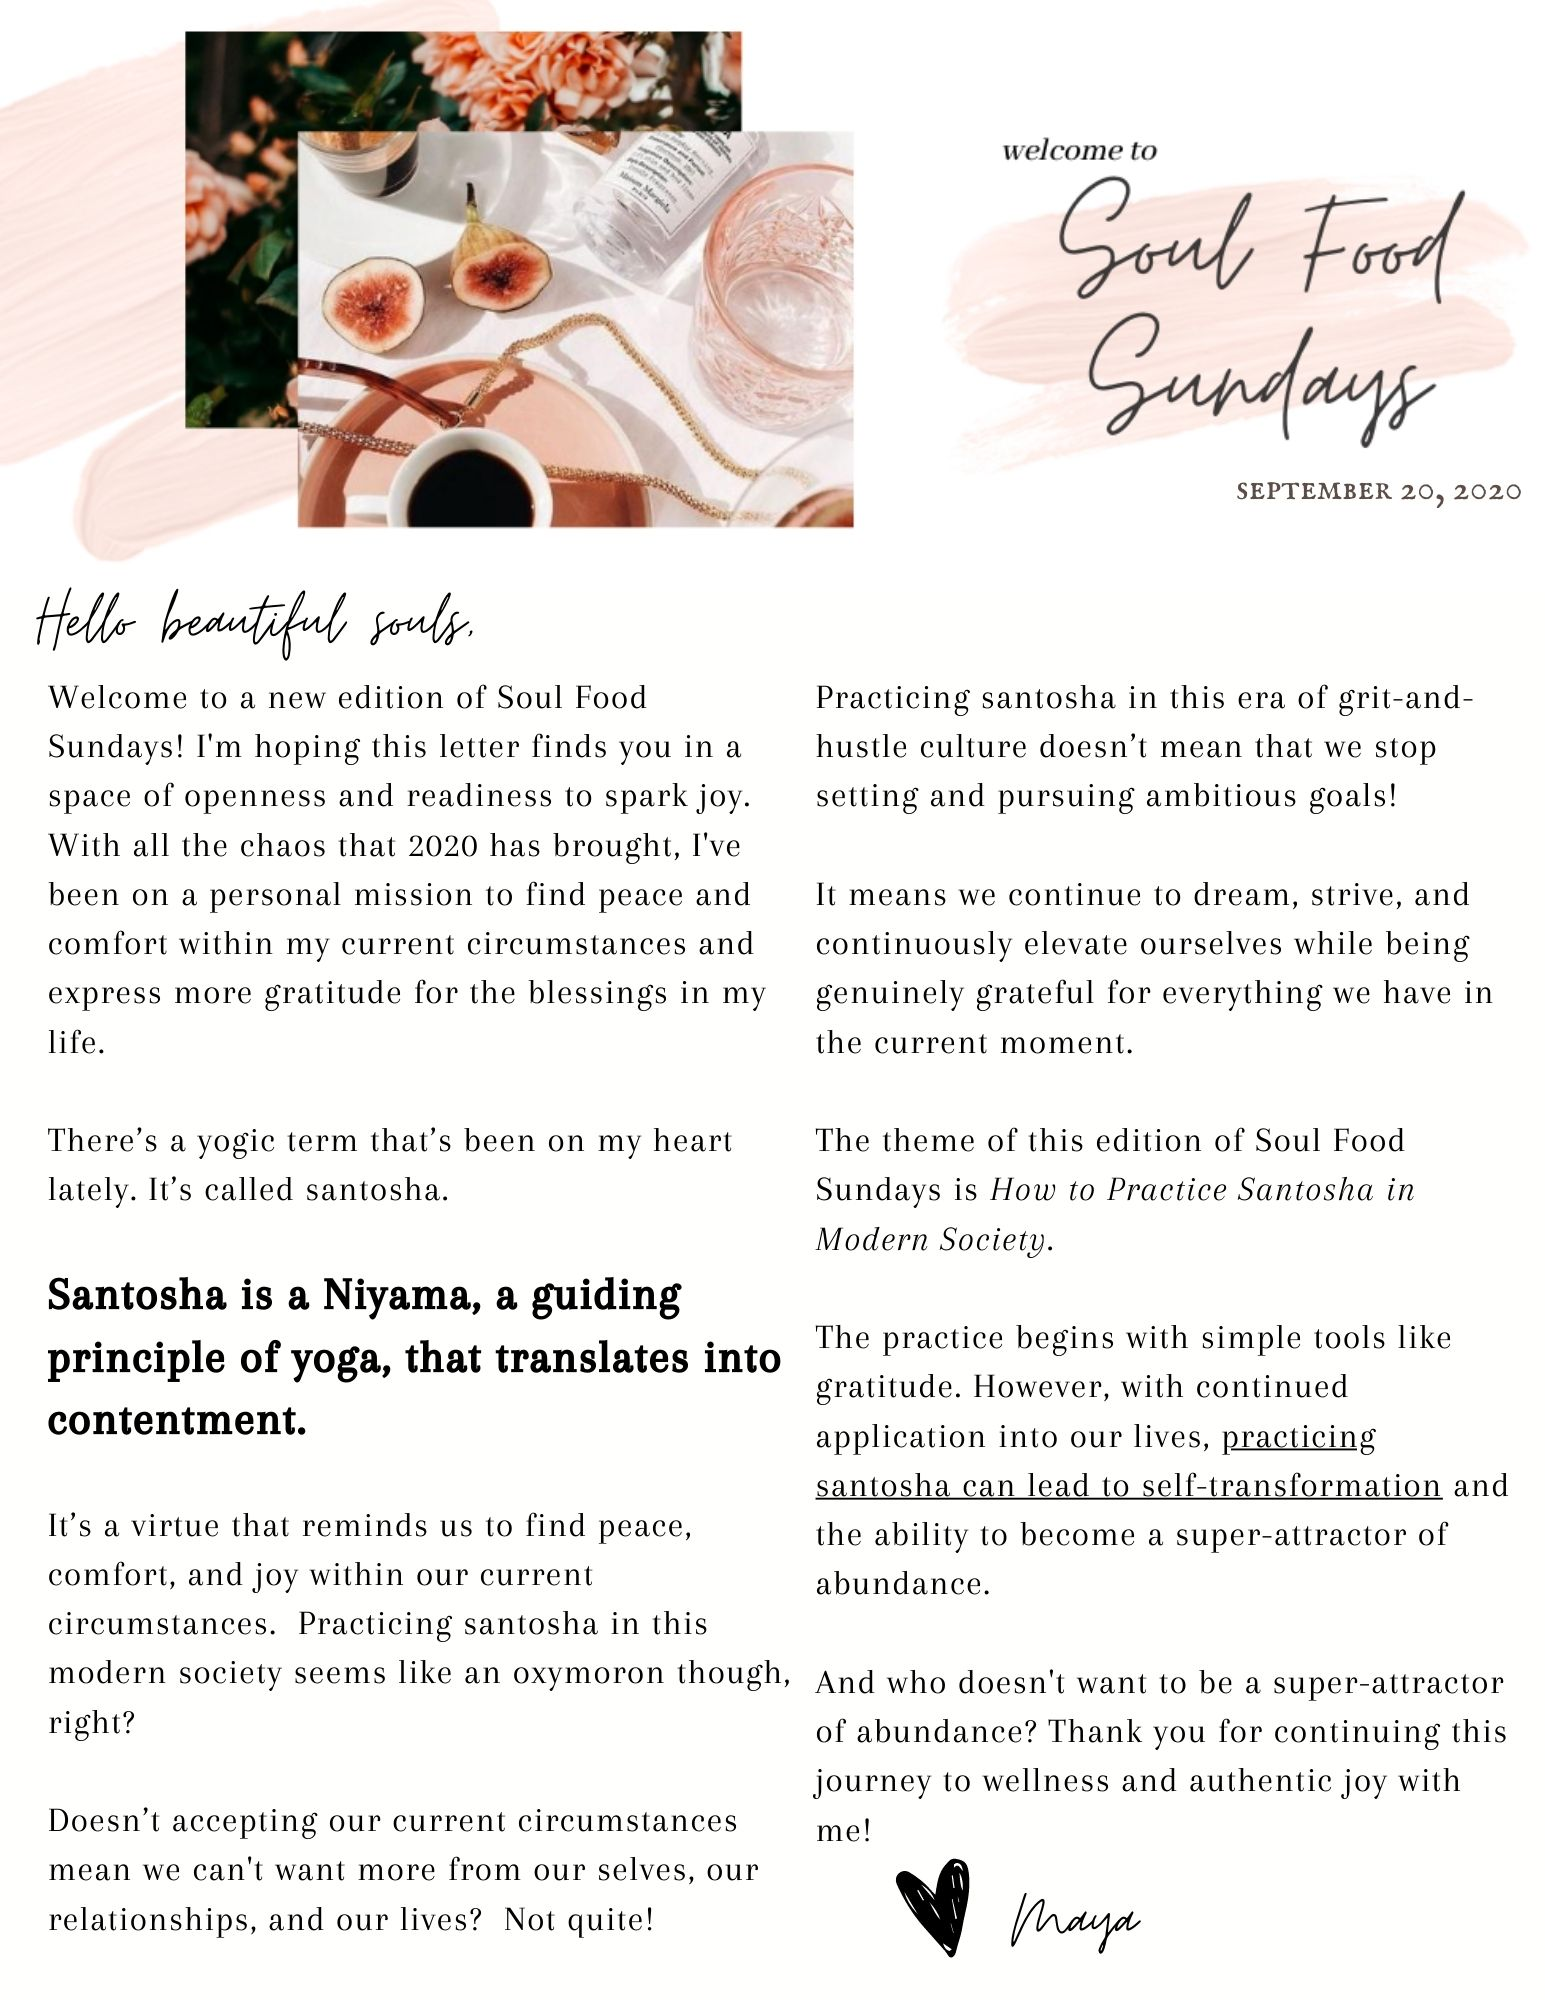 This newsletter edition introduces you to a yogic virtue santosha. Santosha means contentment and this edition teaches you how to be content while elevating yourself.